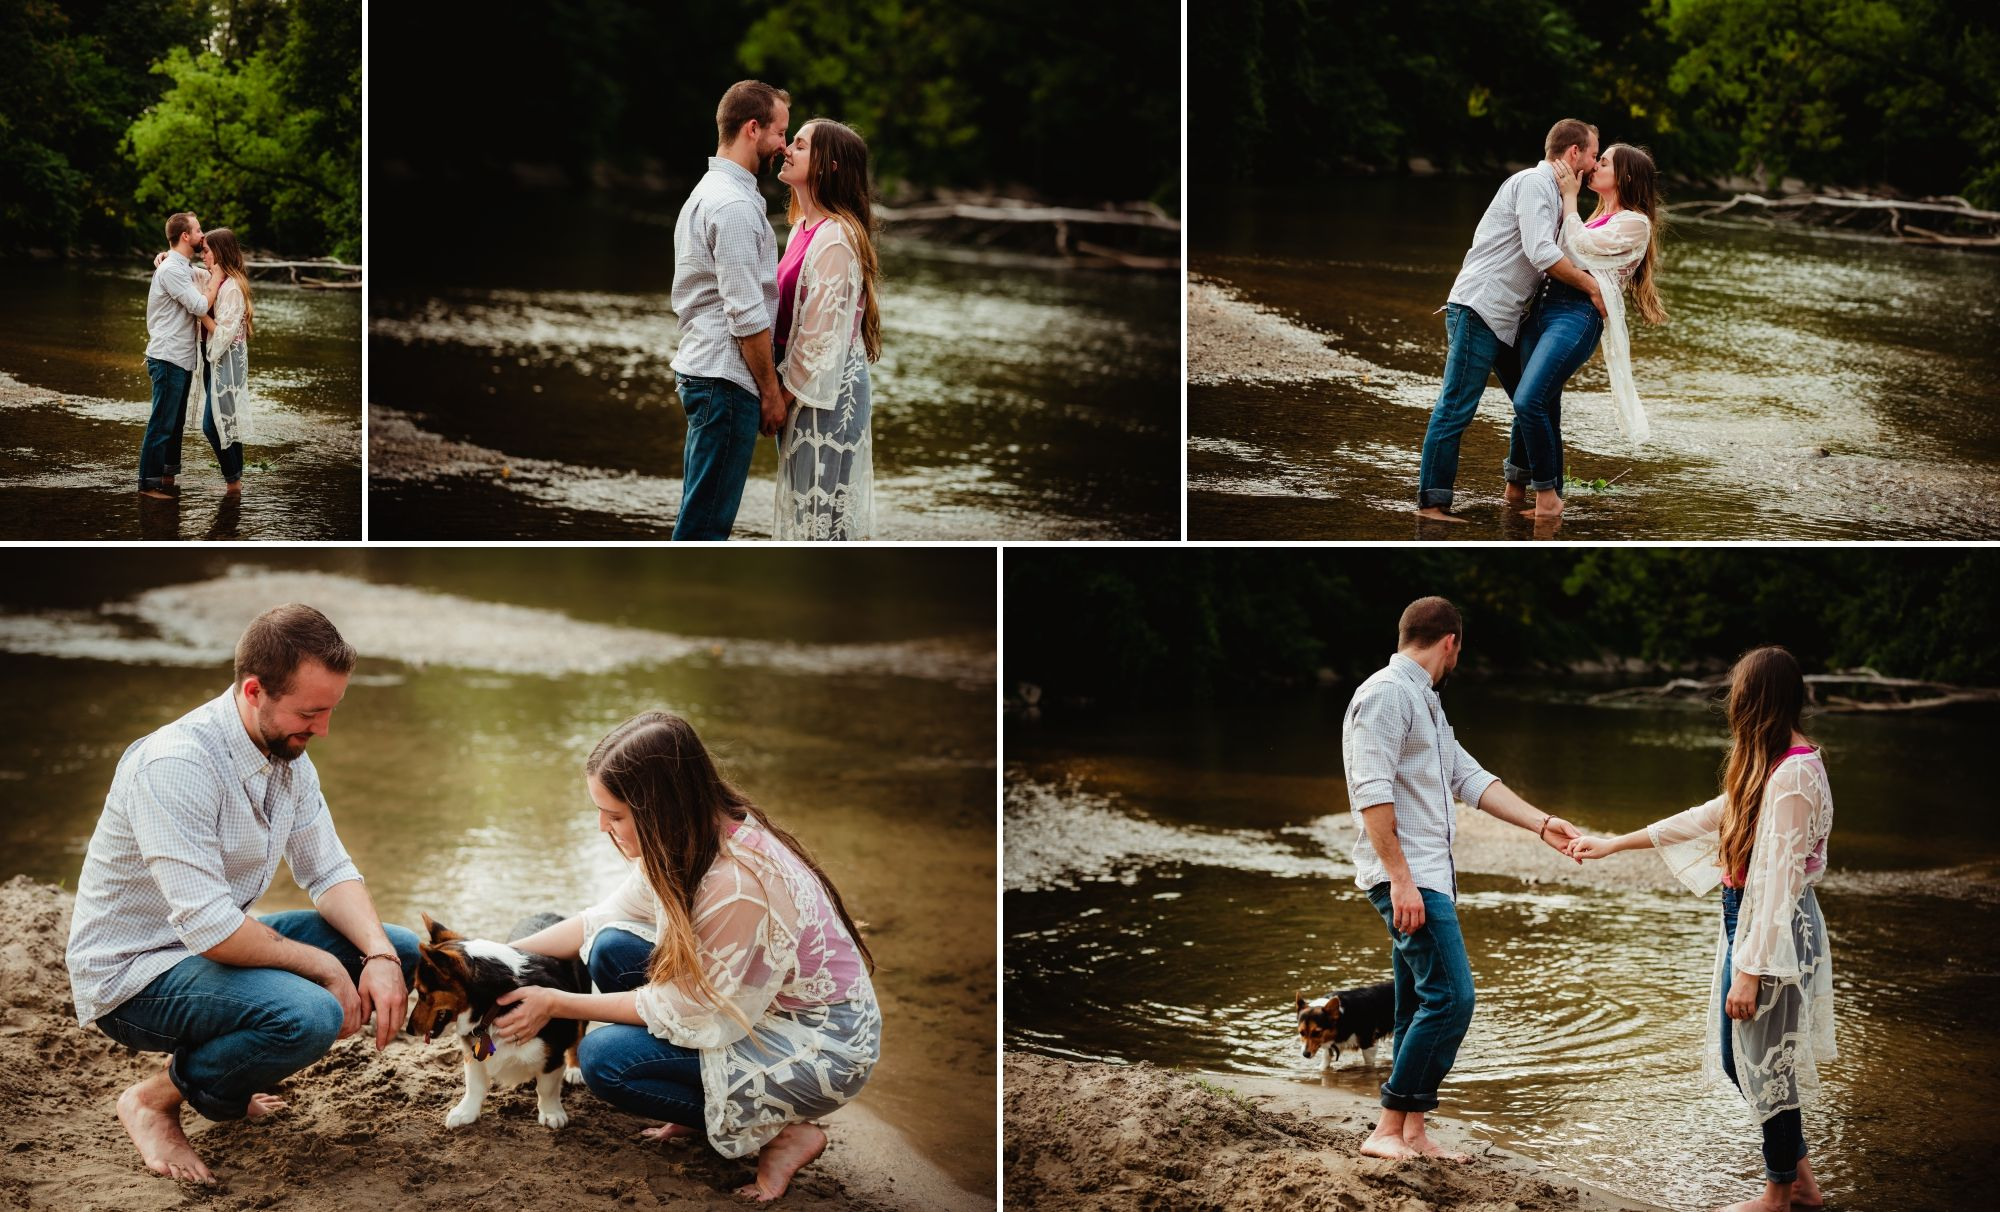 Collage of engaged couple and their corgi in a river.